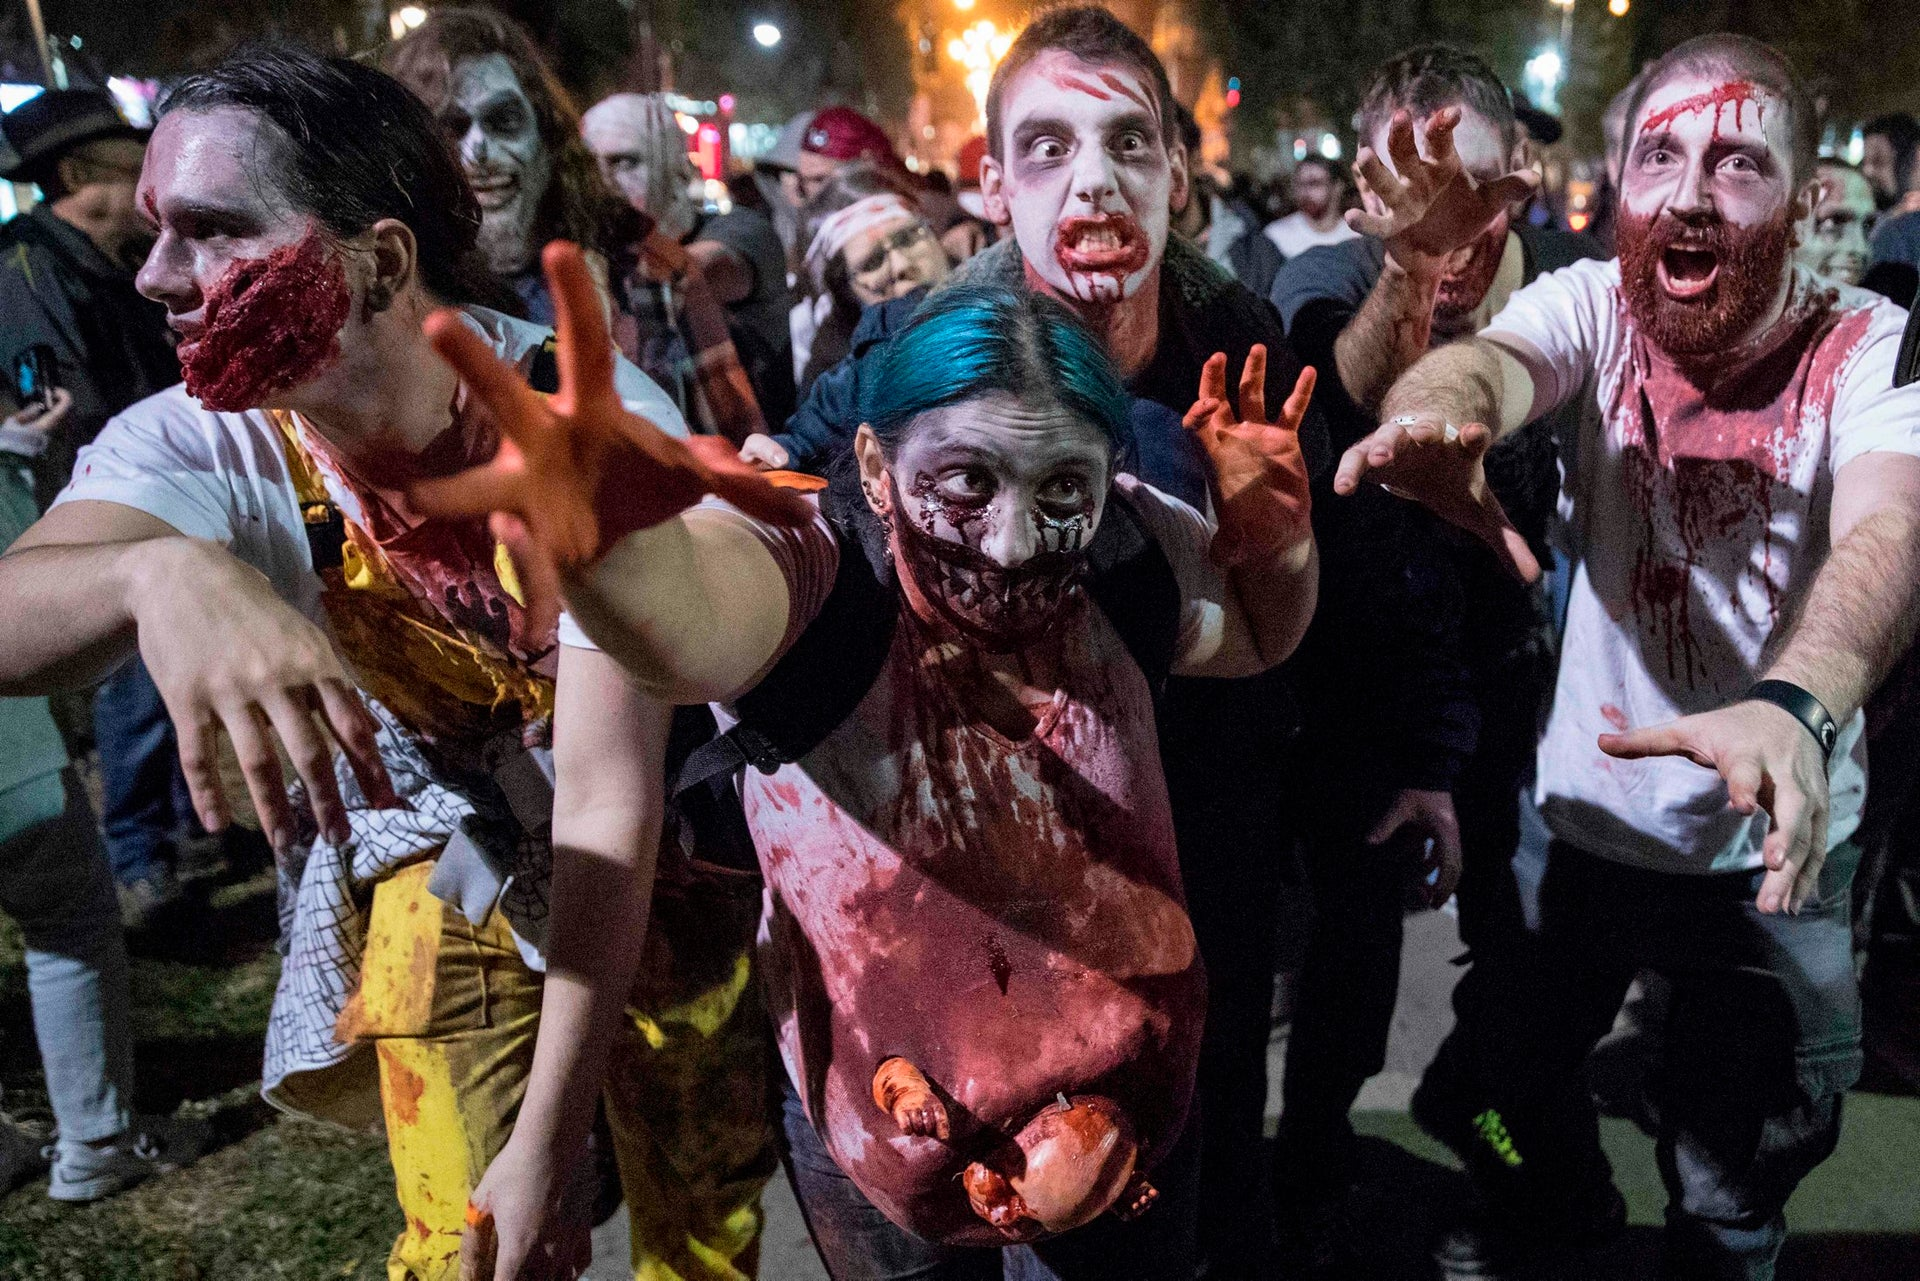 """People wearing costumes and face paint take part in a """"Zombie walk"""" in Tel Aviv as part of the Jewish holiday of Purim on March 11, 2017."""